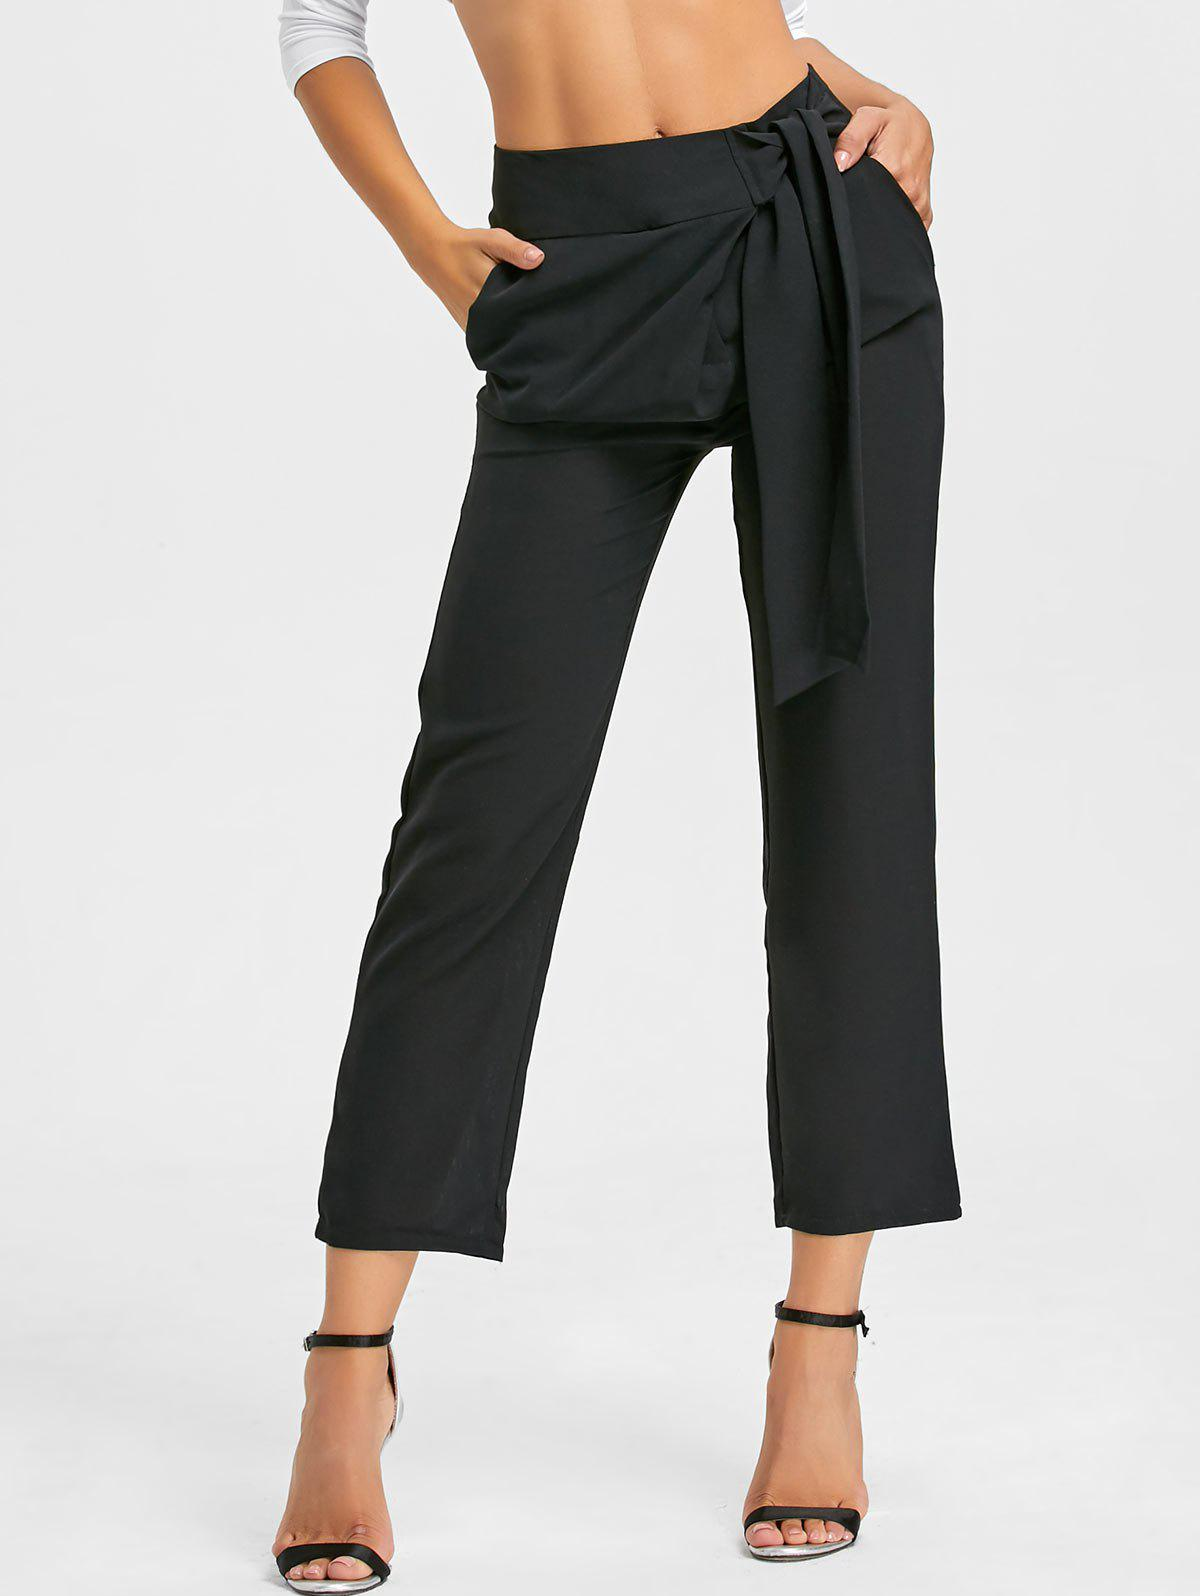 High Wasited Tie Up Pants - BLACK S